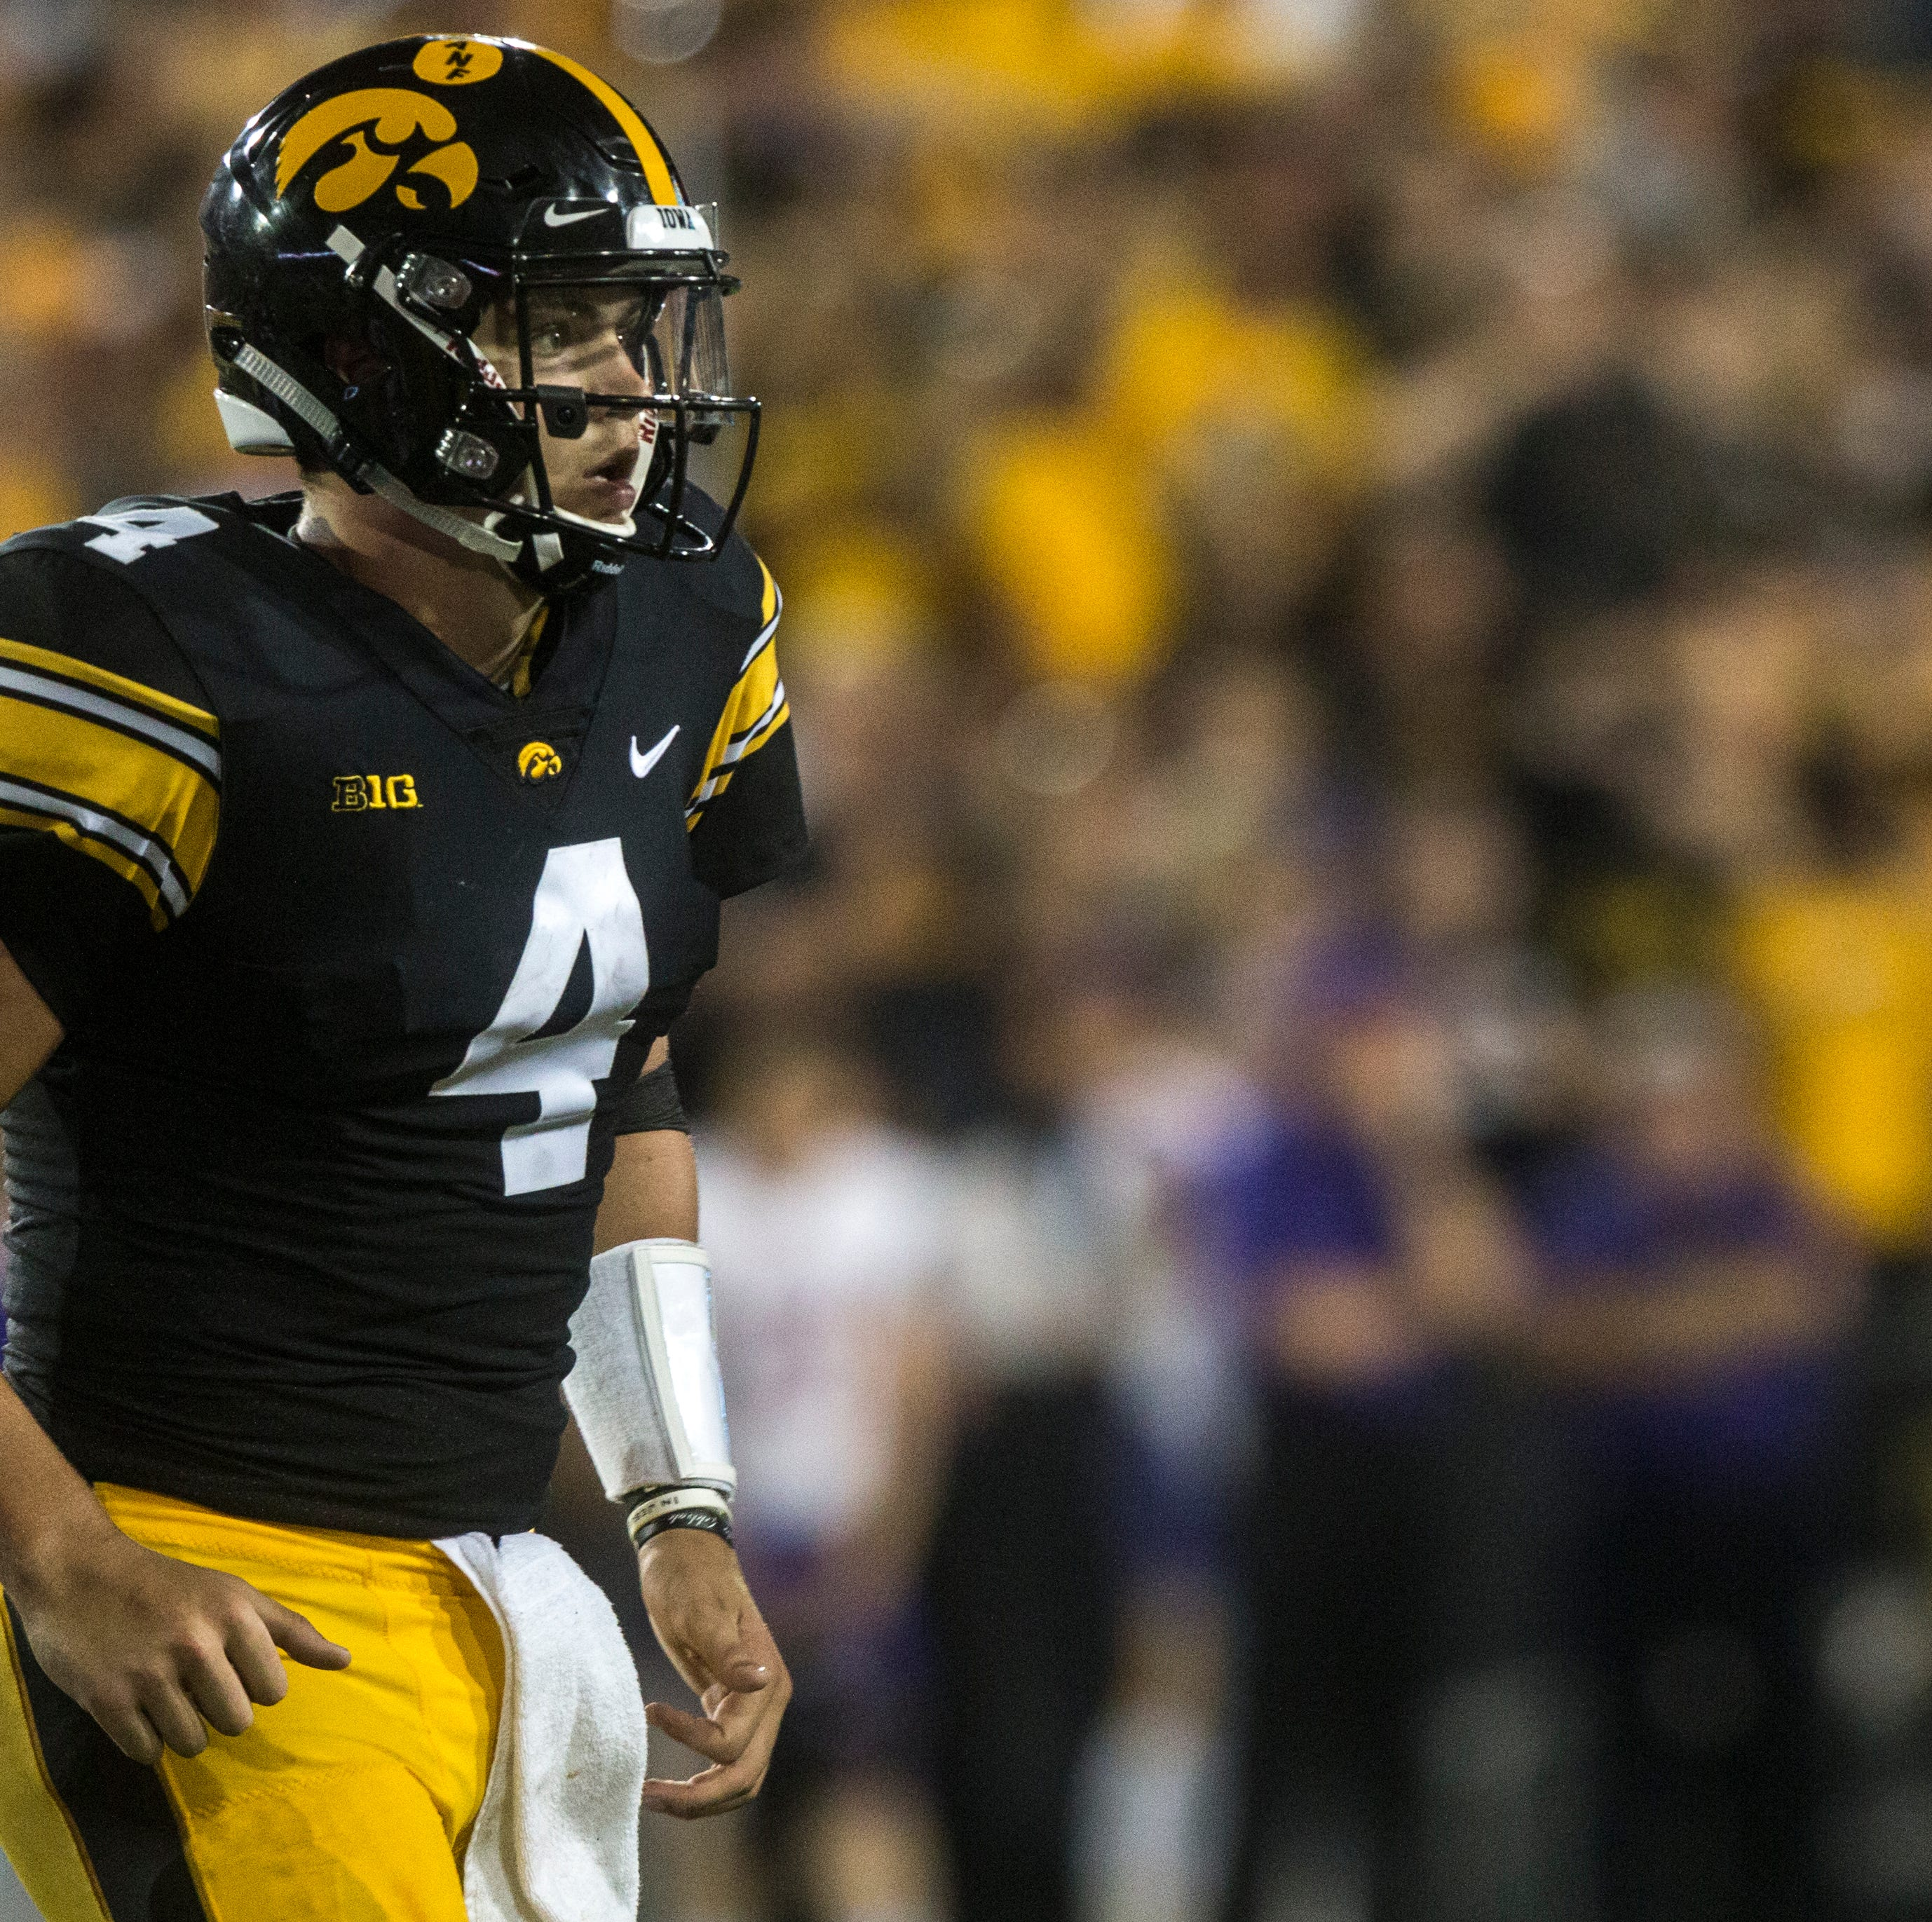 Iowa football: Hawkeyes vs. No. 16 Wisconsin live updates and analysis